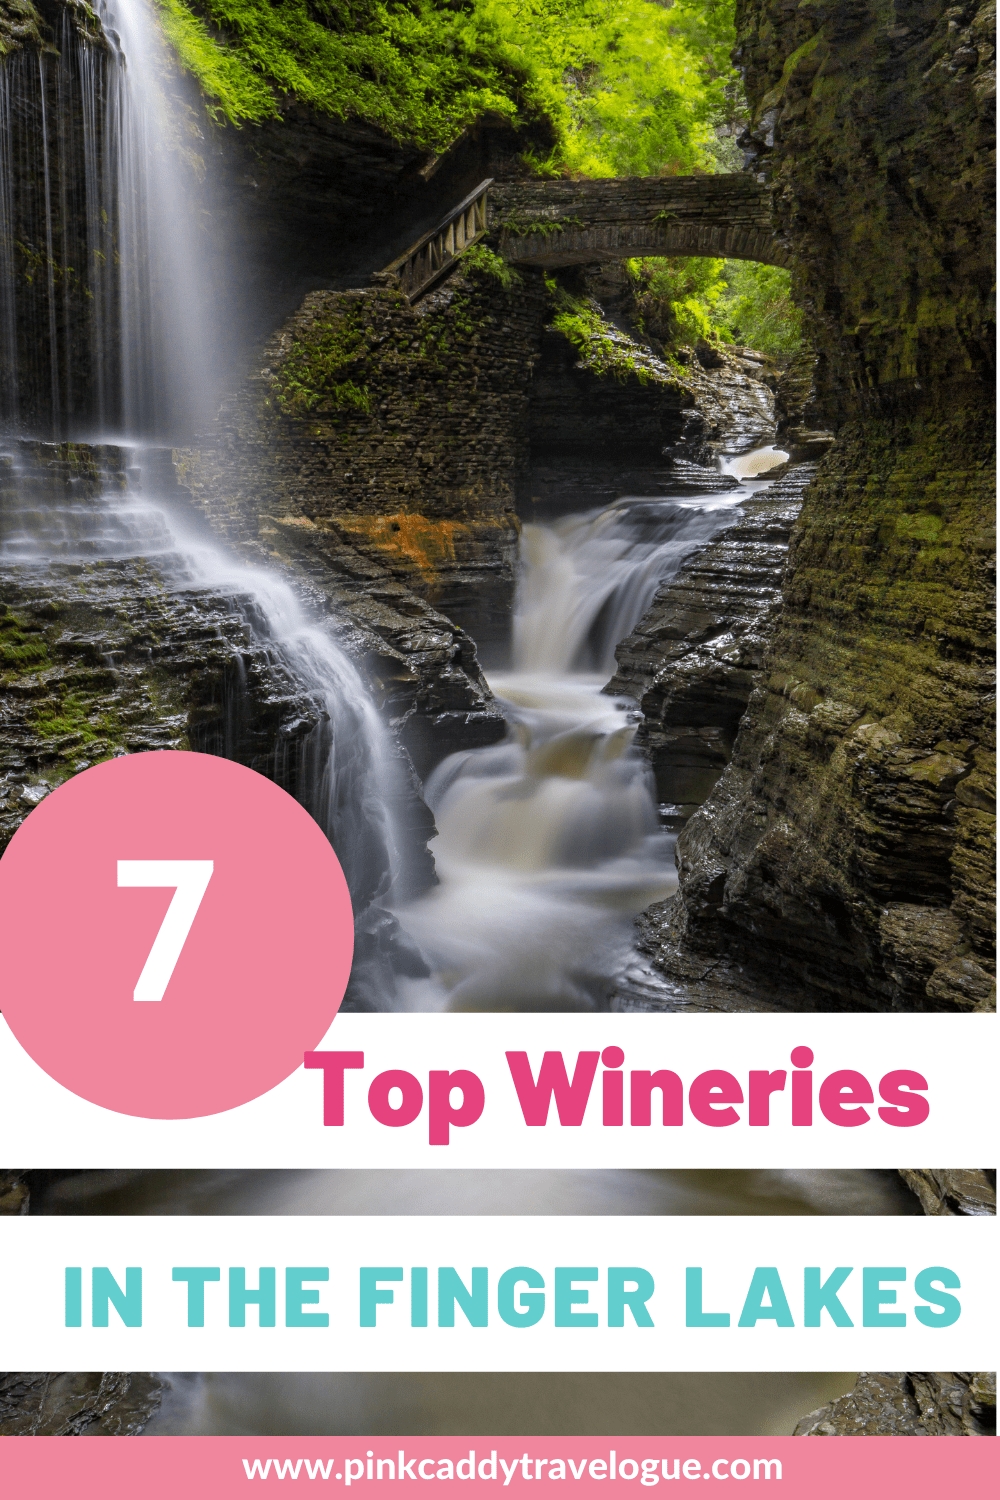 Going on a wine tour of New York's Finger Lakes regions? Here's a review of 7 of the most popular Finger Lakes wineries! #newyork #fingerlakes #winetour #usawineries